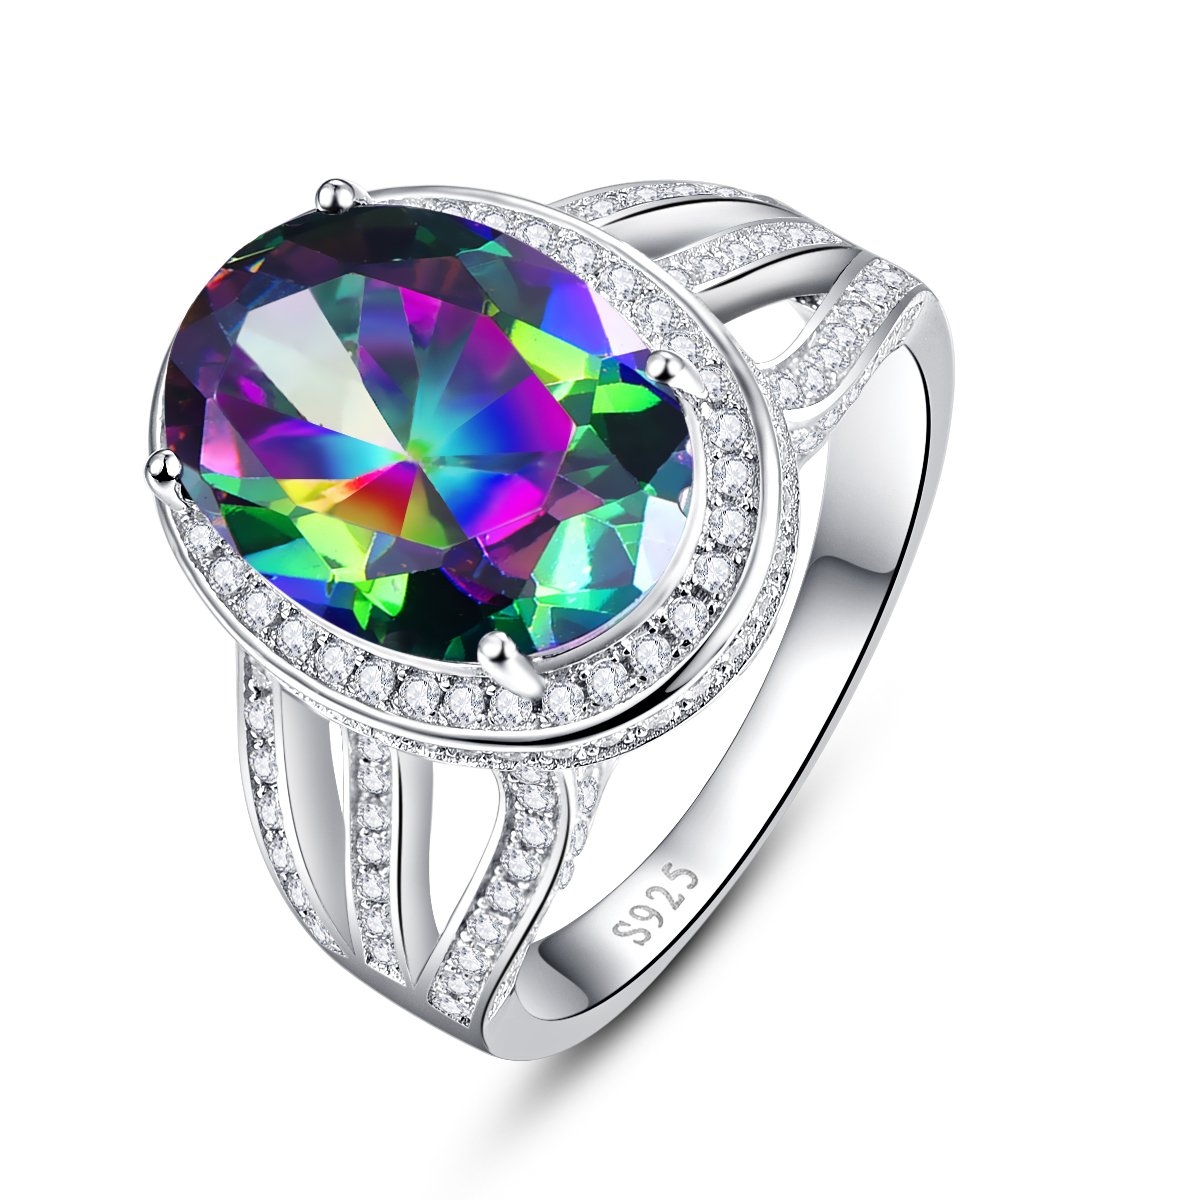 BONLAVIE Oval Created Mystic Rainbow Topaz White Cubic Zirconia CZ Engagement Ring 925 Sterling Silver 7